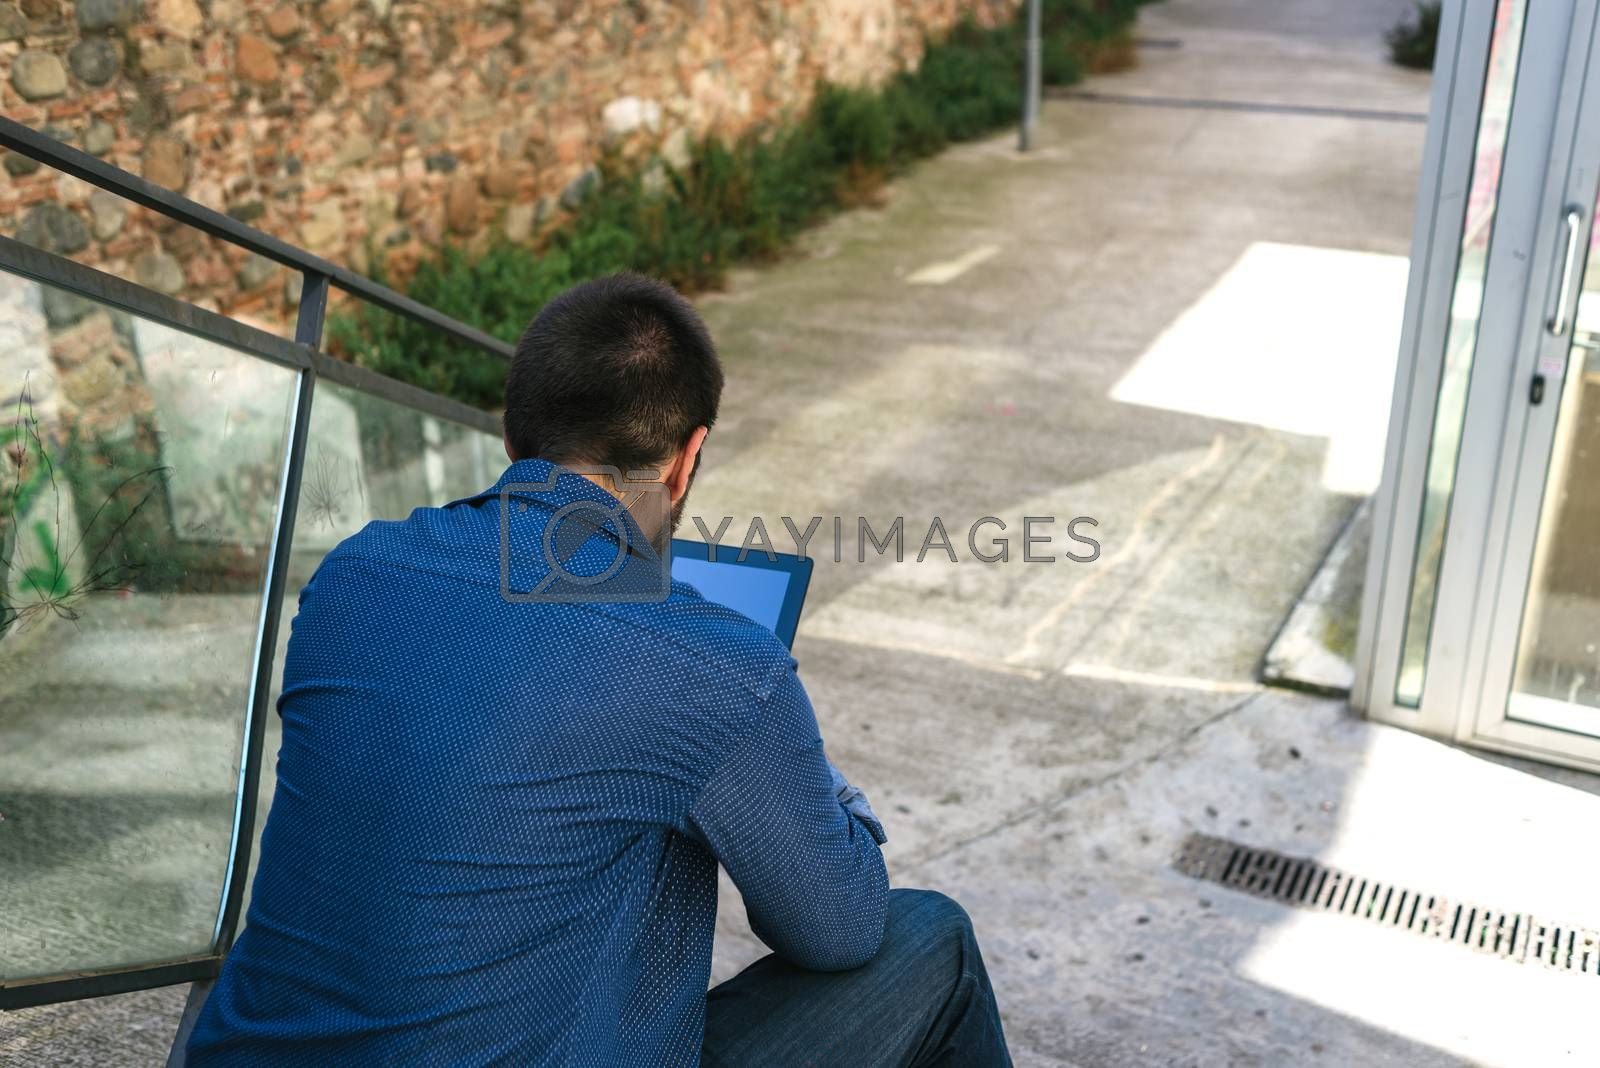 Portrait of a bearded man sitting on steps while using a tablet